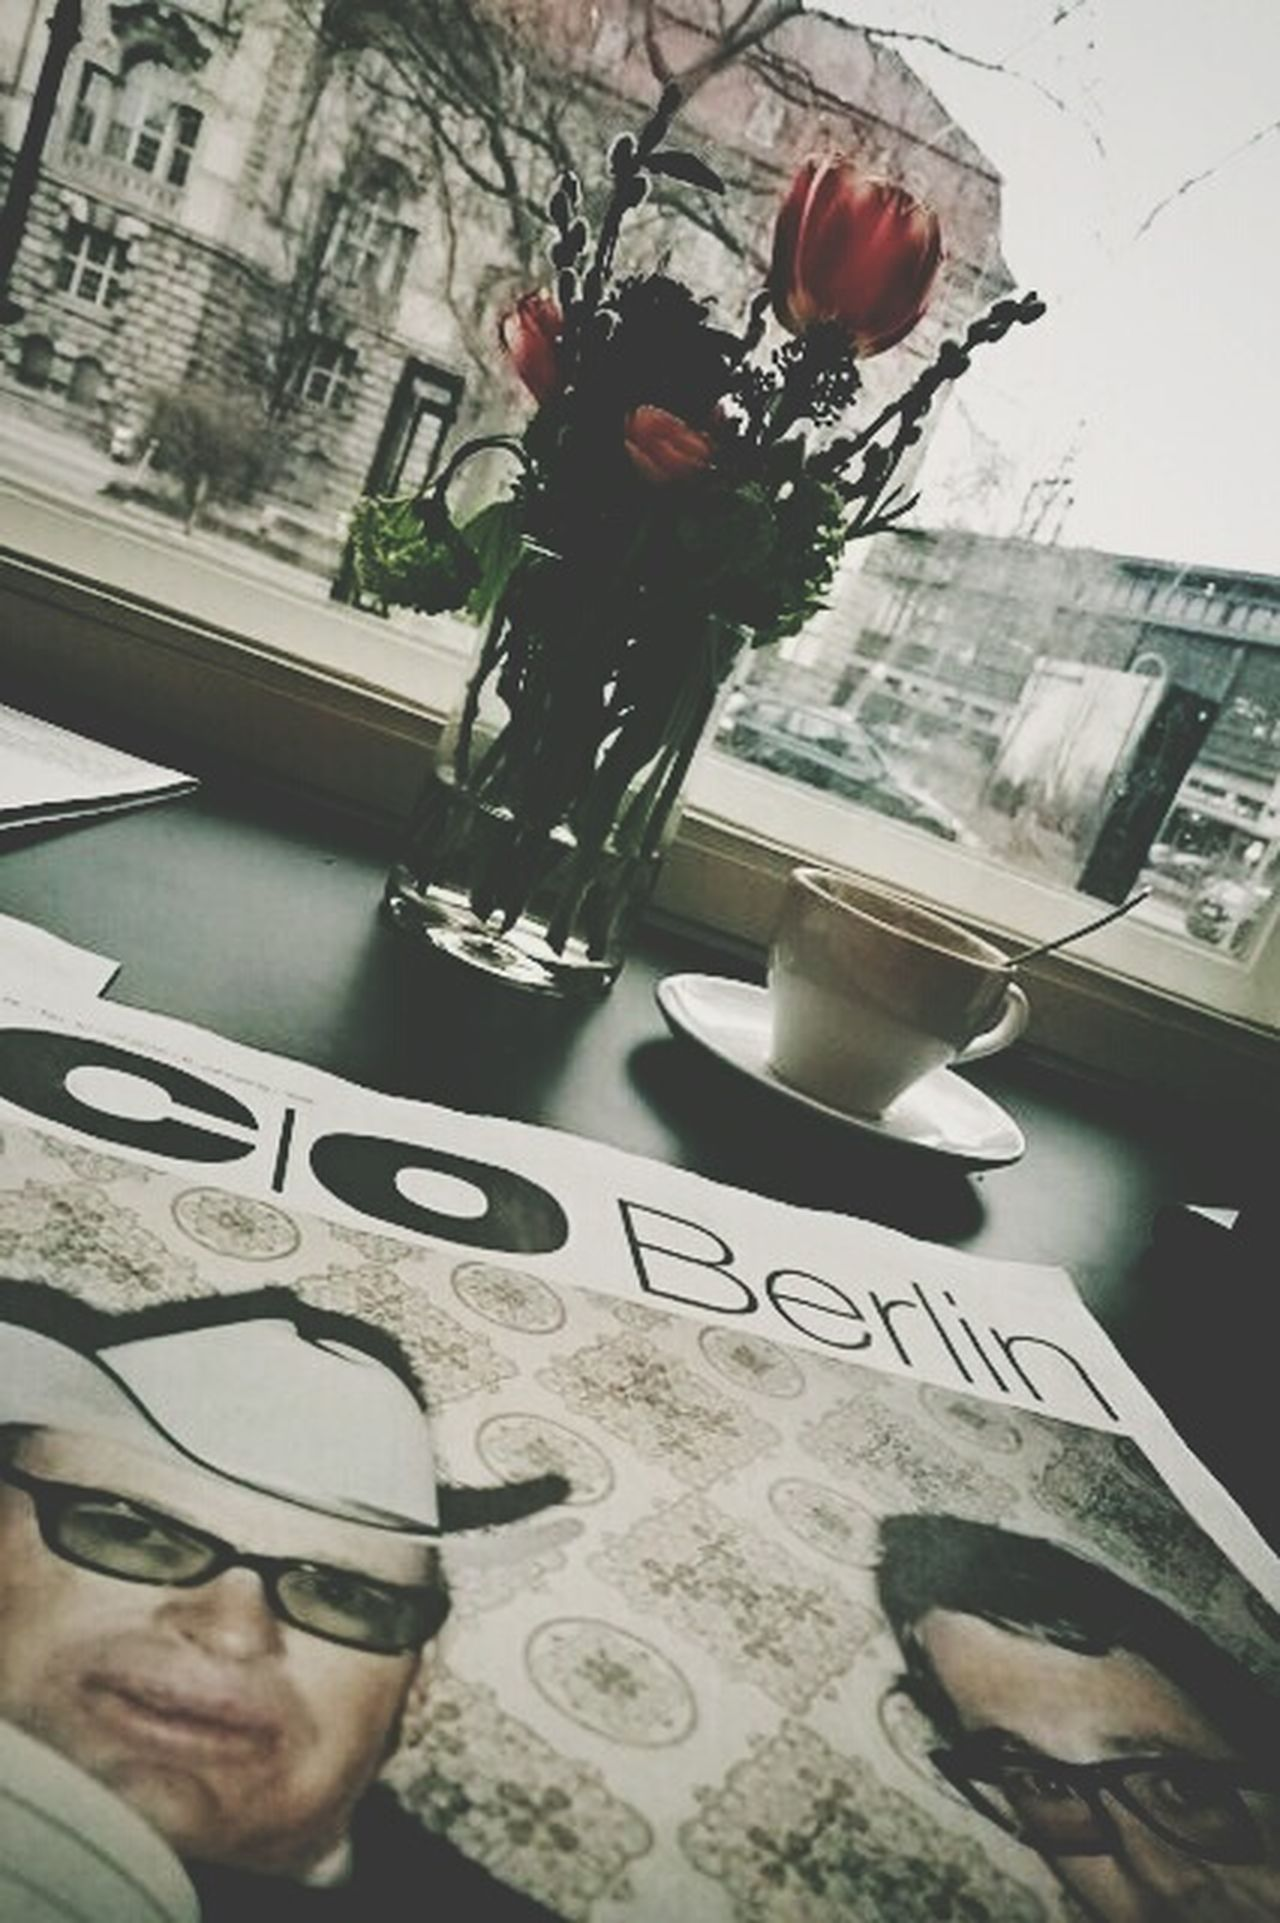 Coffee Time Rainy Days Relaxing Reading Stephen Shore Berlin Week On Eyeem Kaffee Und Kuchen Cozy Place Always Be Cozy